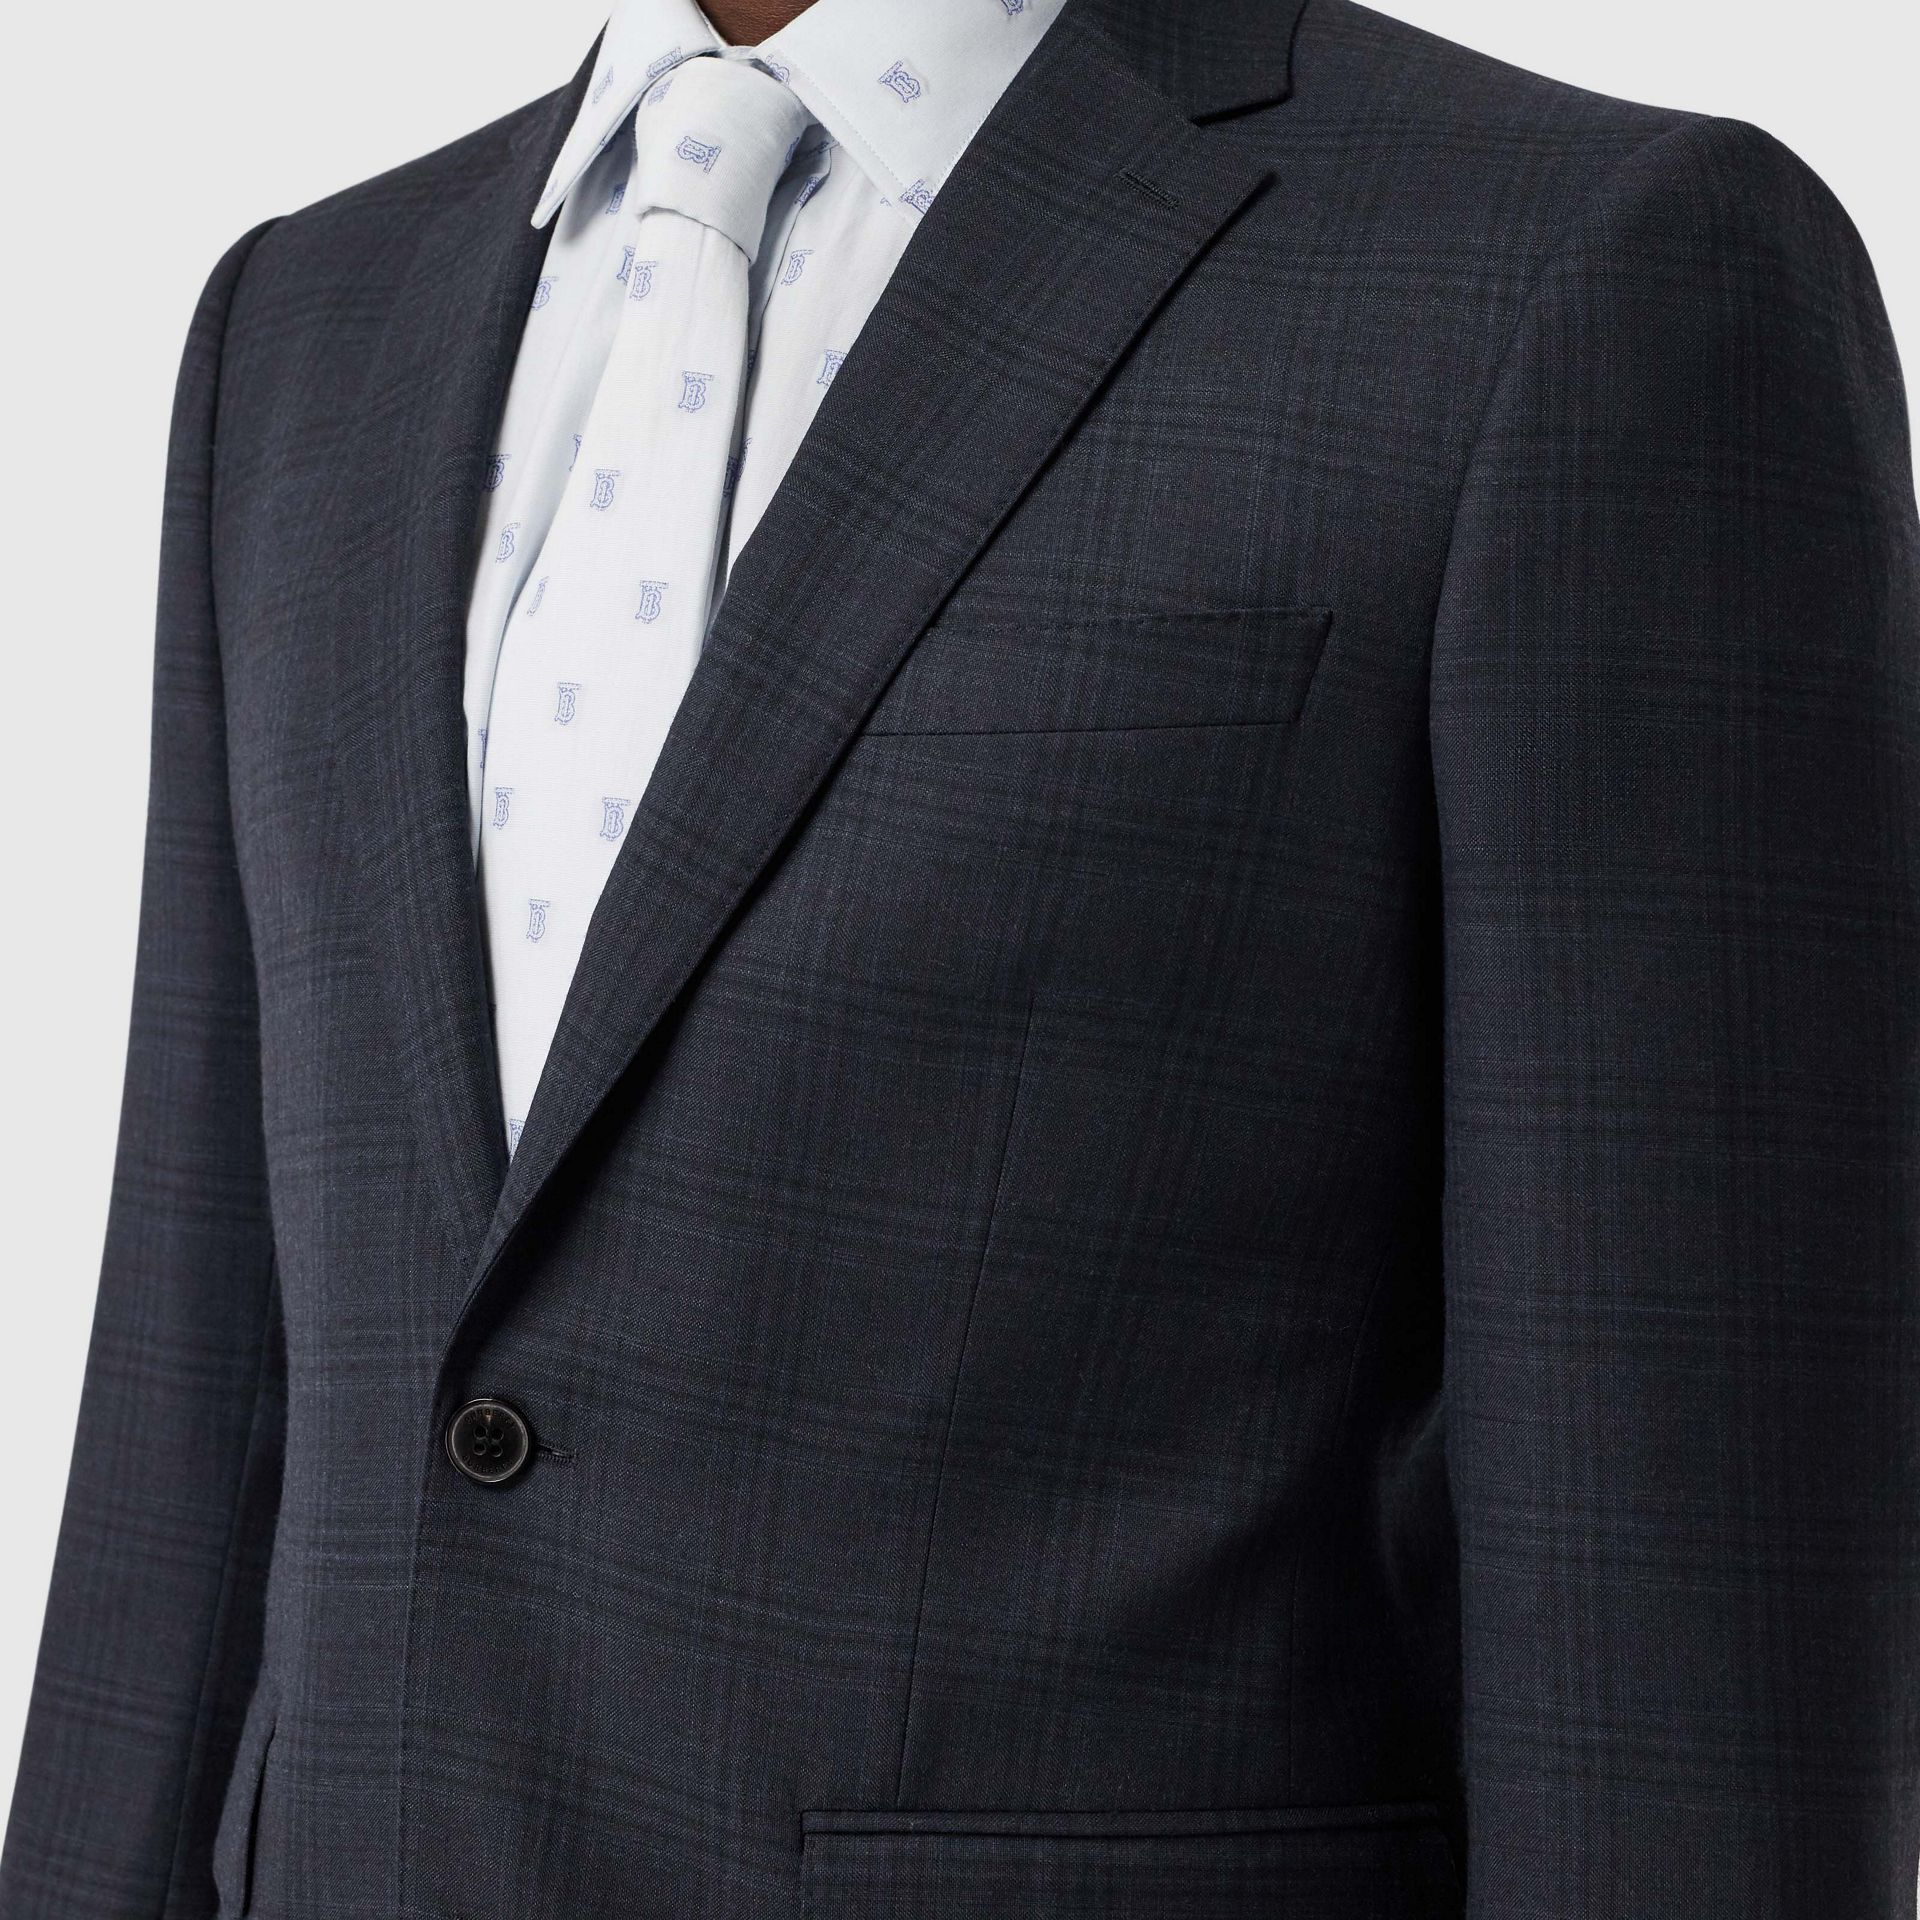 Classic Fit Windowpane Check Wool Suit in Uniform Blue - Men | Burberry Singapore - gallery image 1